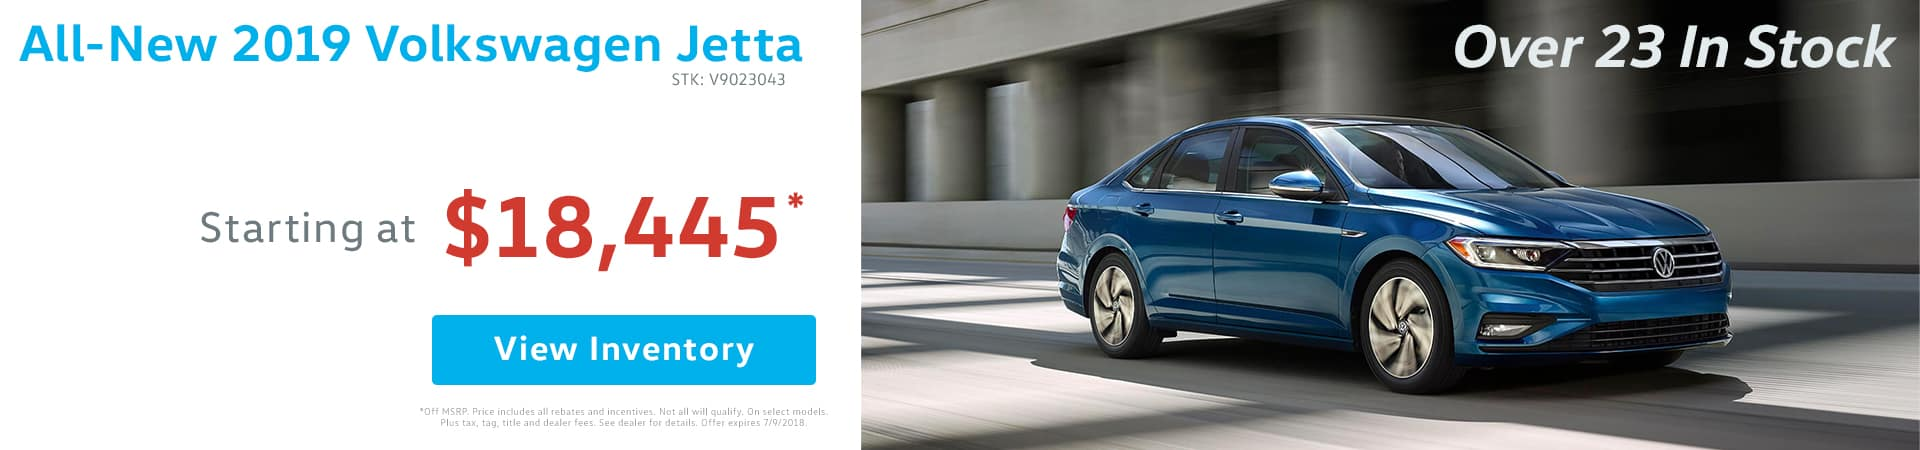 Drive home the all-new 2019 Volkswagen Jetta for as low as $18,445 in Murfreesboro TN